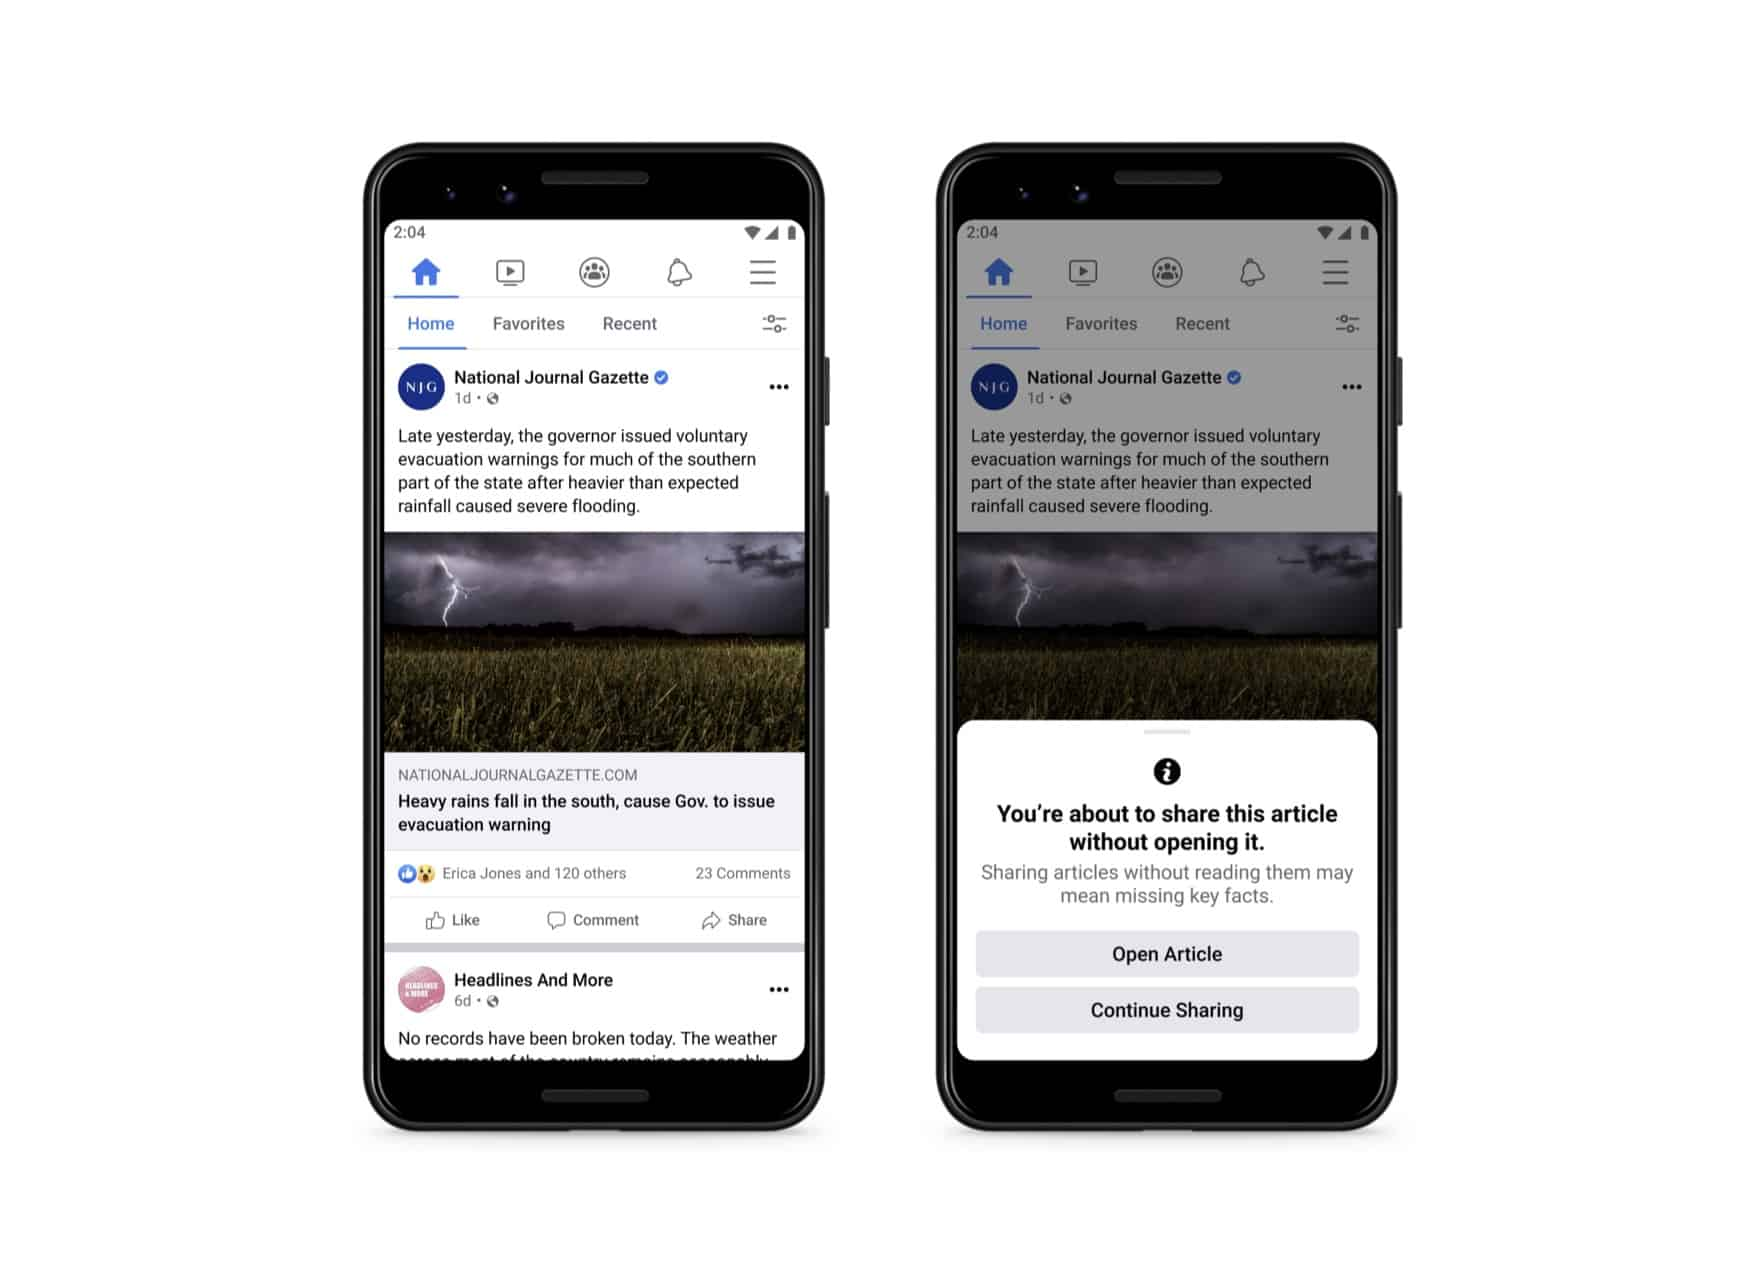 Facebook Now Wants You To Read Articles Before Sharing Them